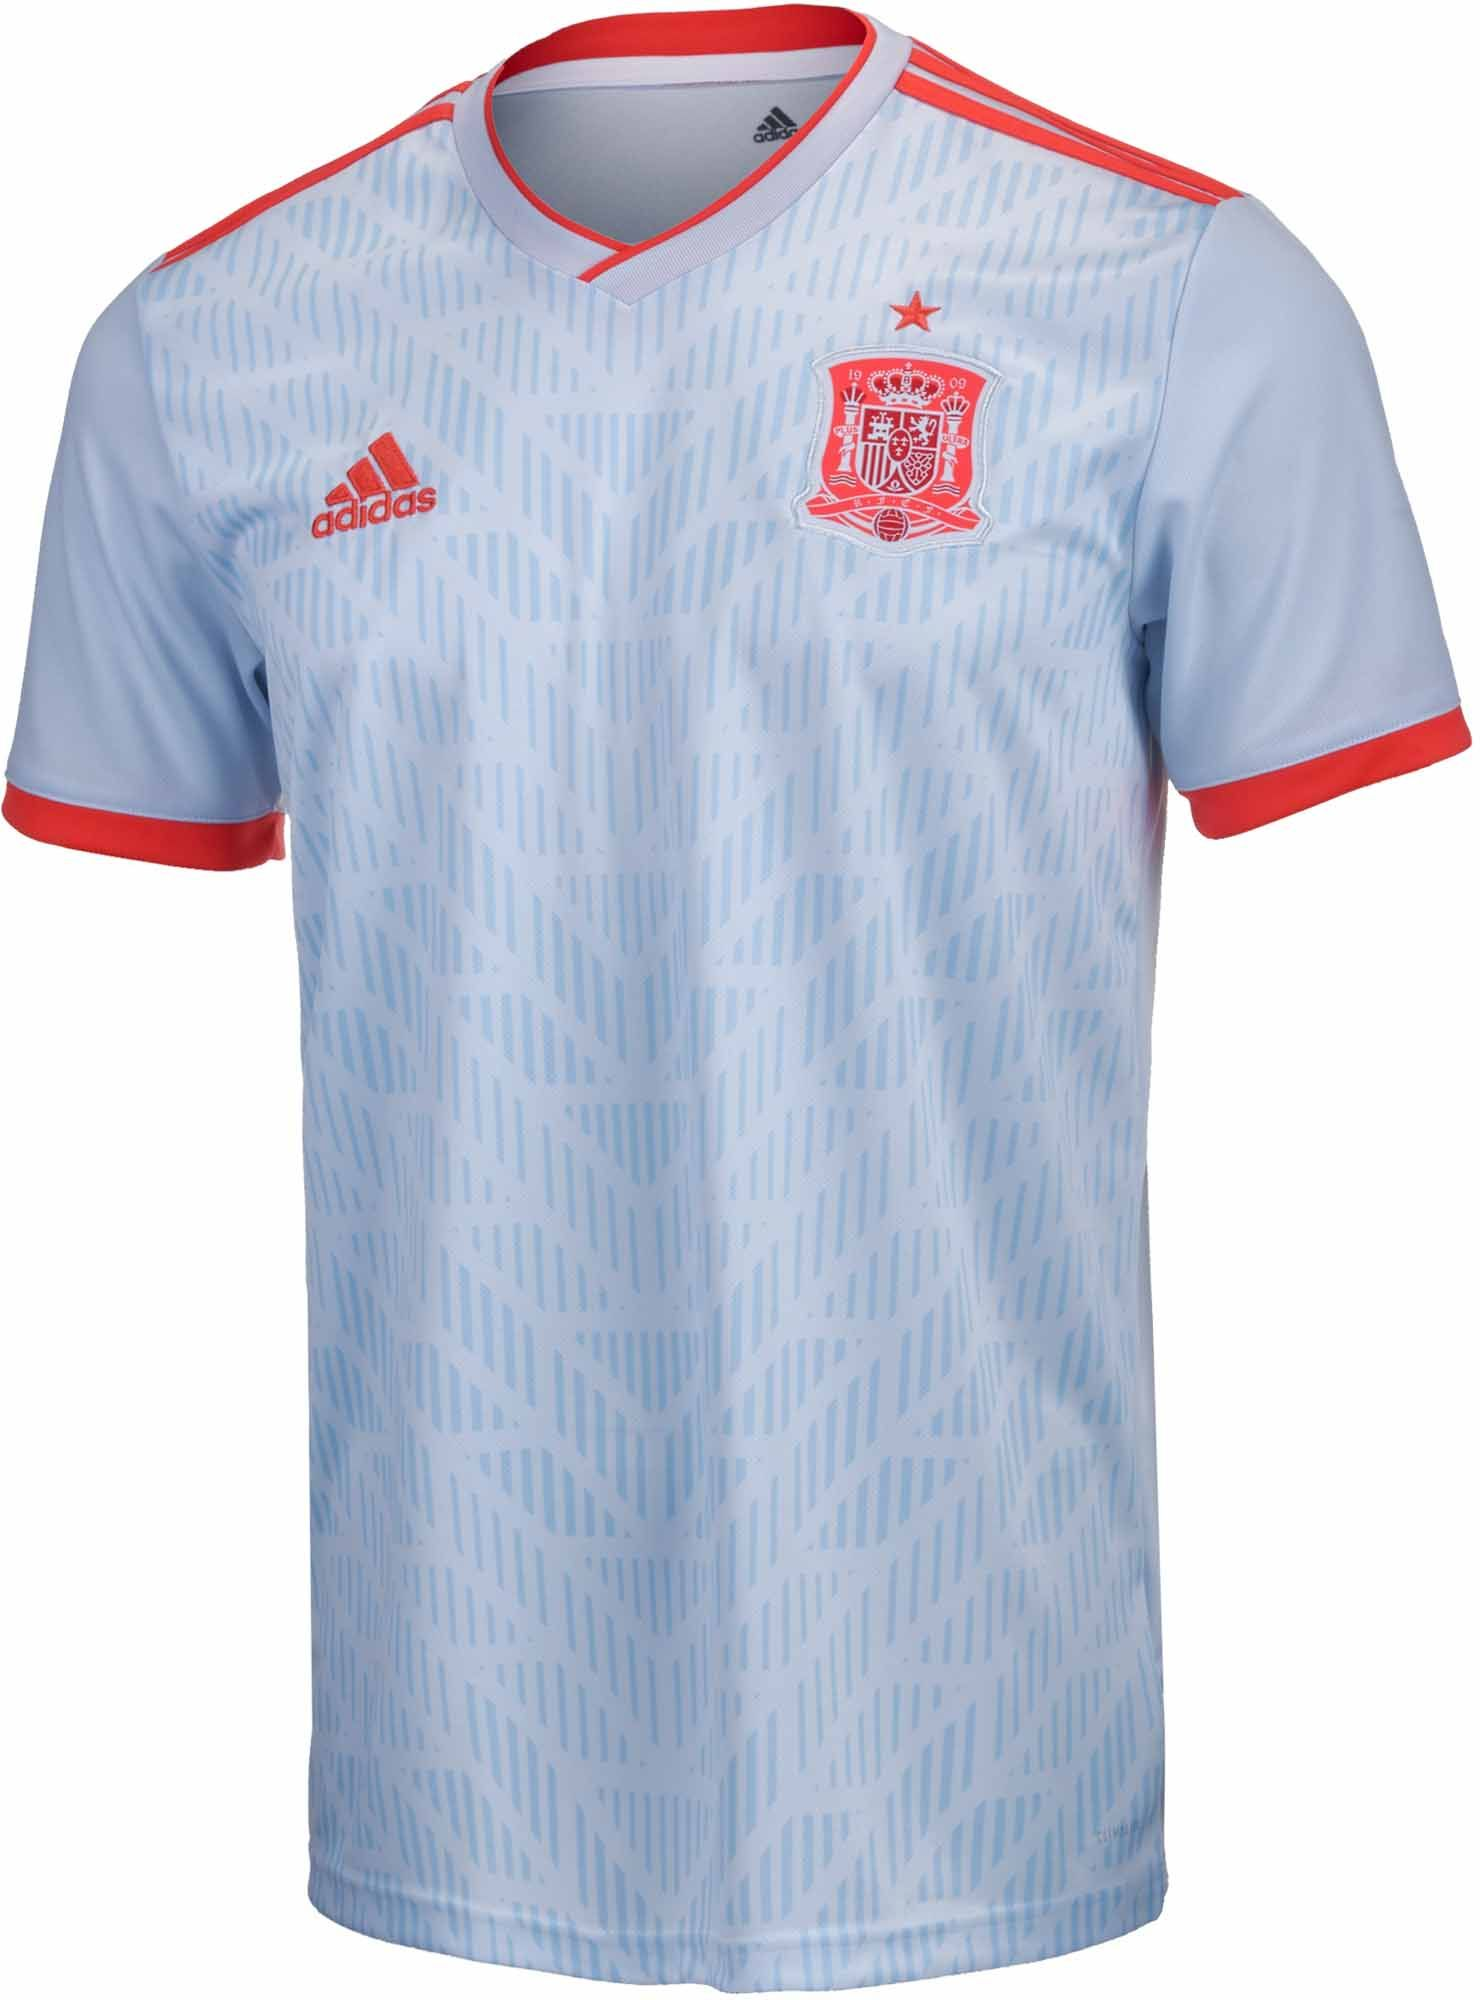 Kids 2018 adidas Spain Away Jersey. Hot right now at SoccerPro. 1d1f264f7